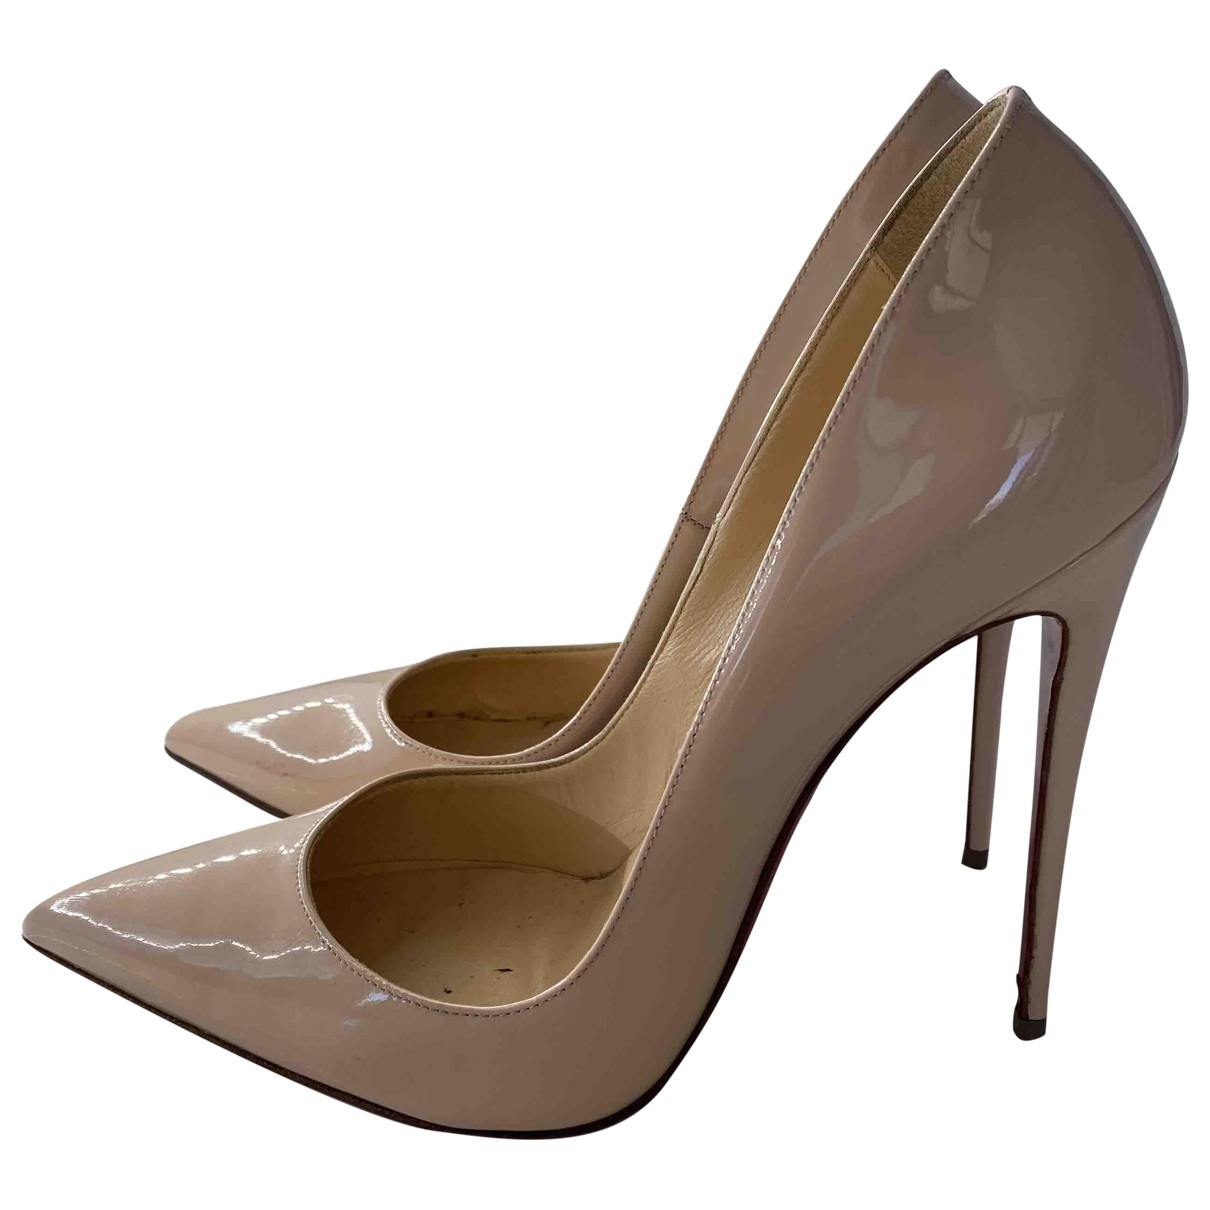 Christian Louboutin So Kate  Beige Patent leather Heels for Women 39.5 EU